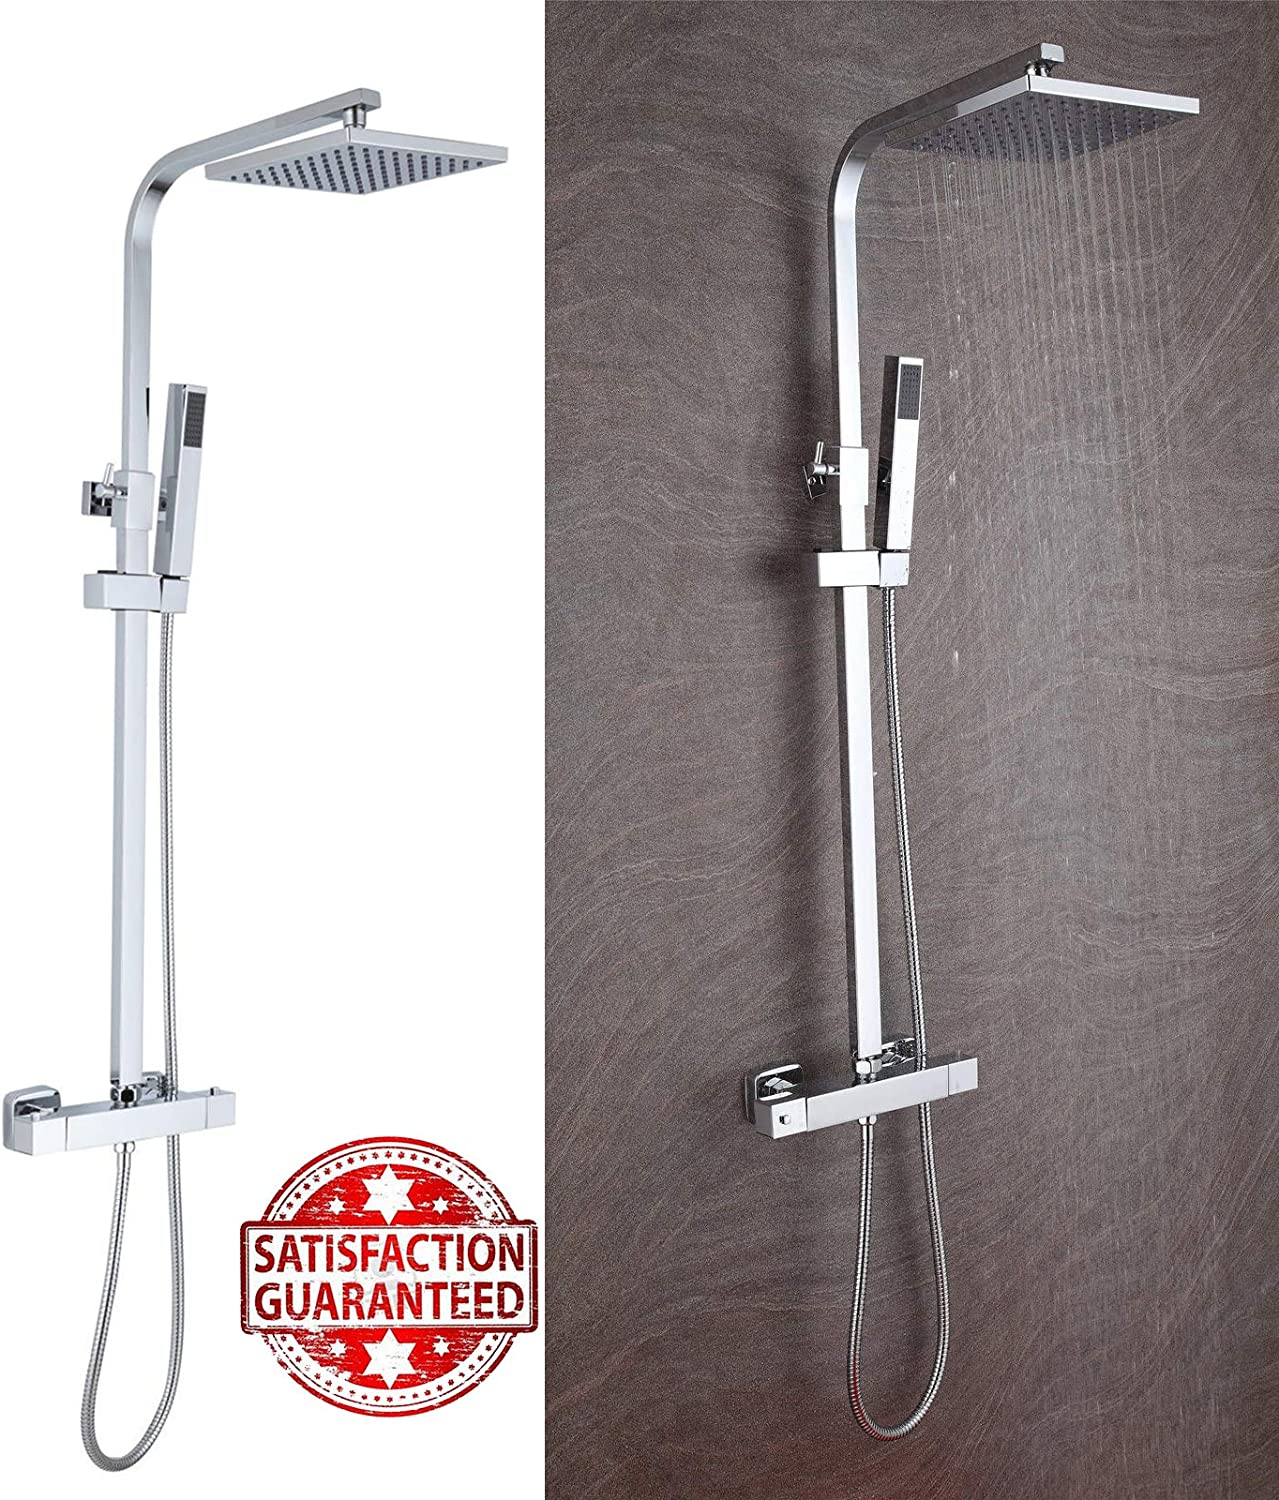 Shower System 38°C Thermostatic 2-Way Mixer Shower with Square 8 Inch Rainfall Shower Head and Hand Held Shower -Function Shower System for Bath Bar Adjustable Chrome +Adjustable Rail 2.5M Hose